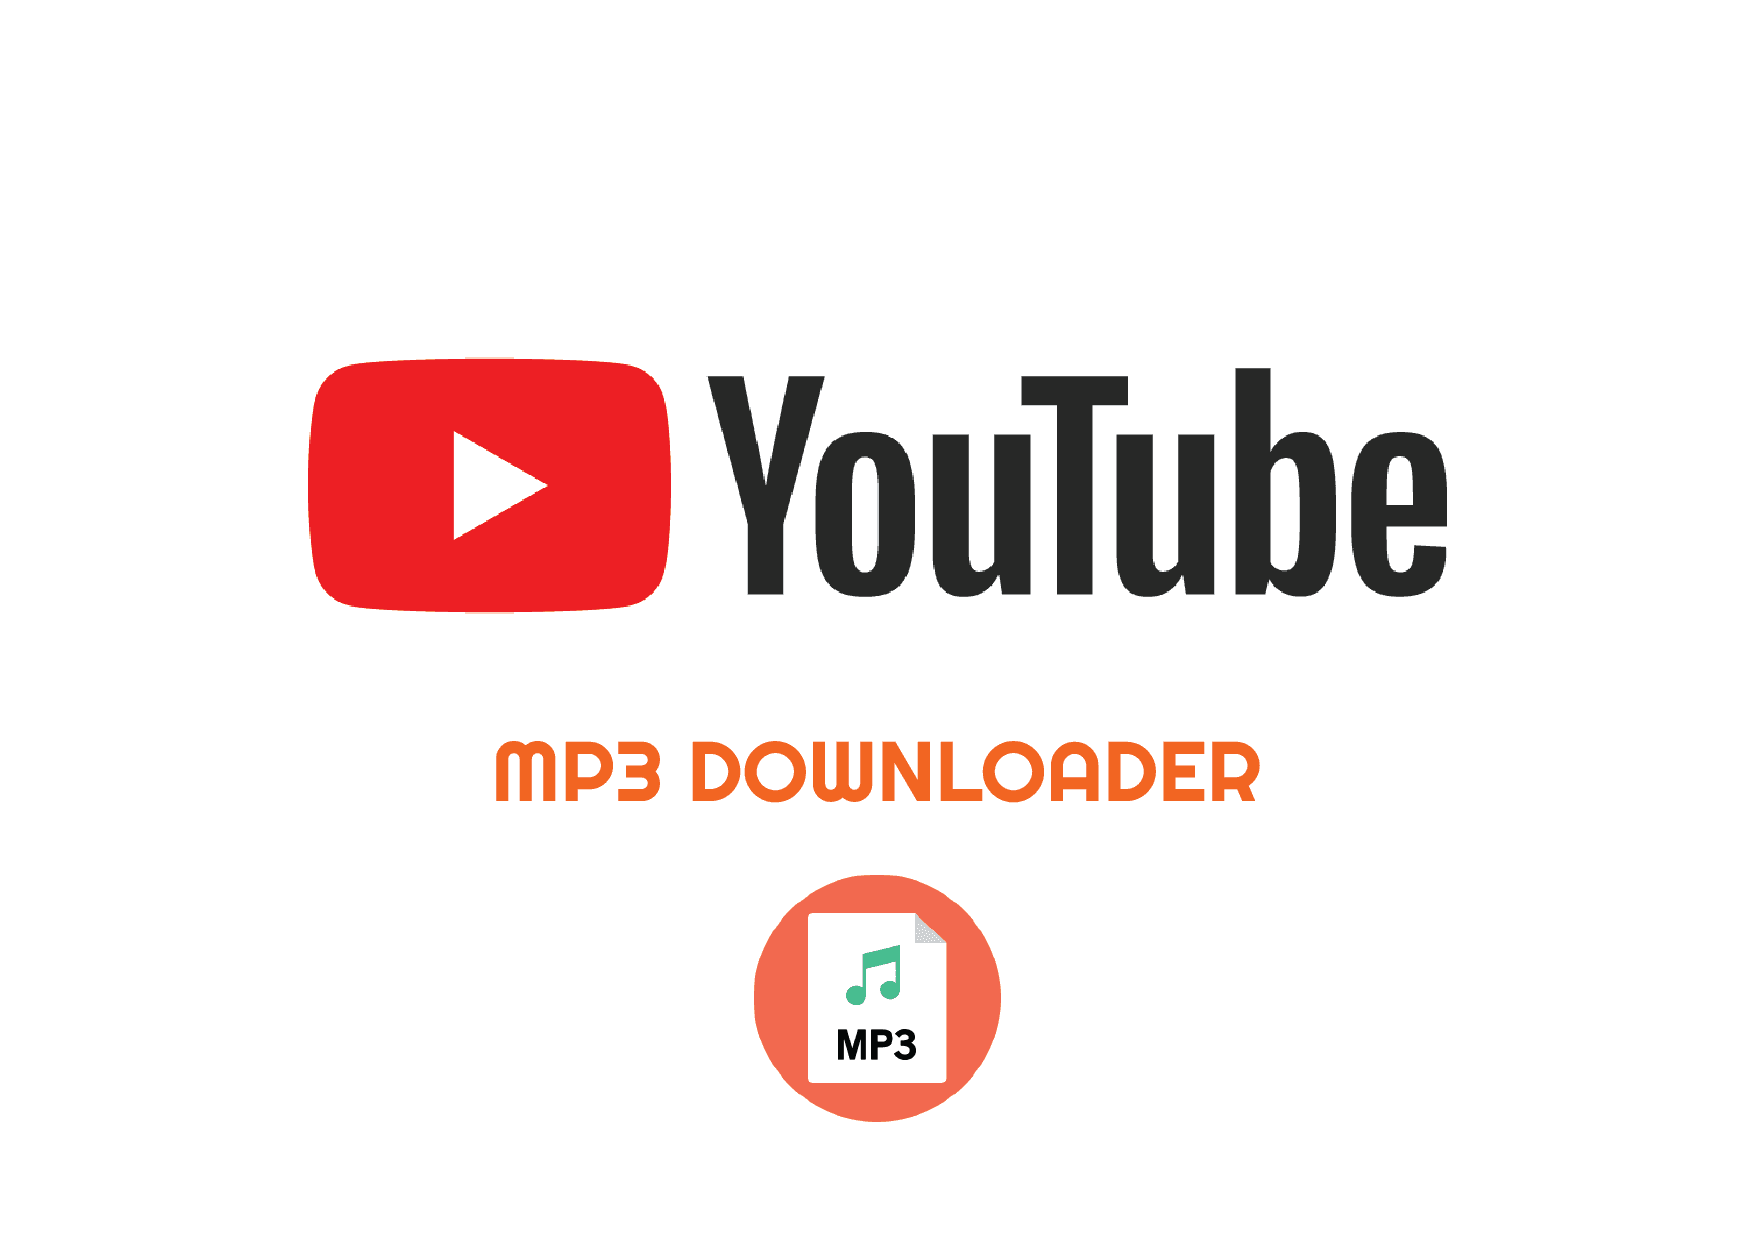 How to Download Youtube Video to MP3